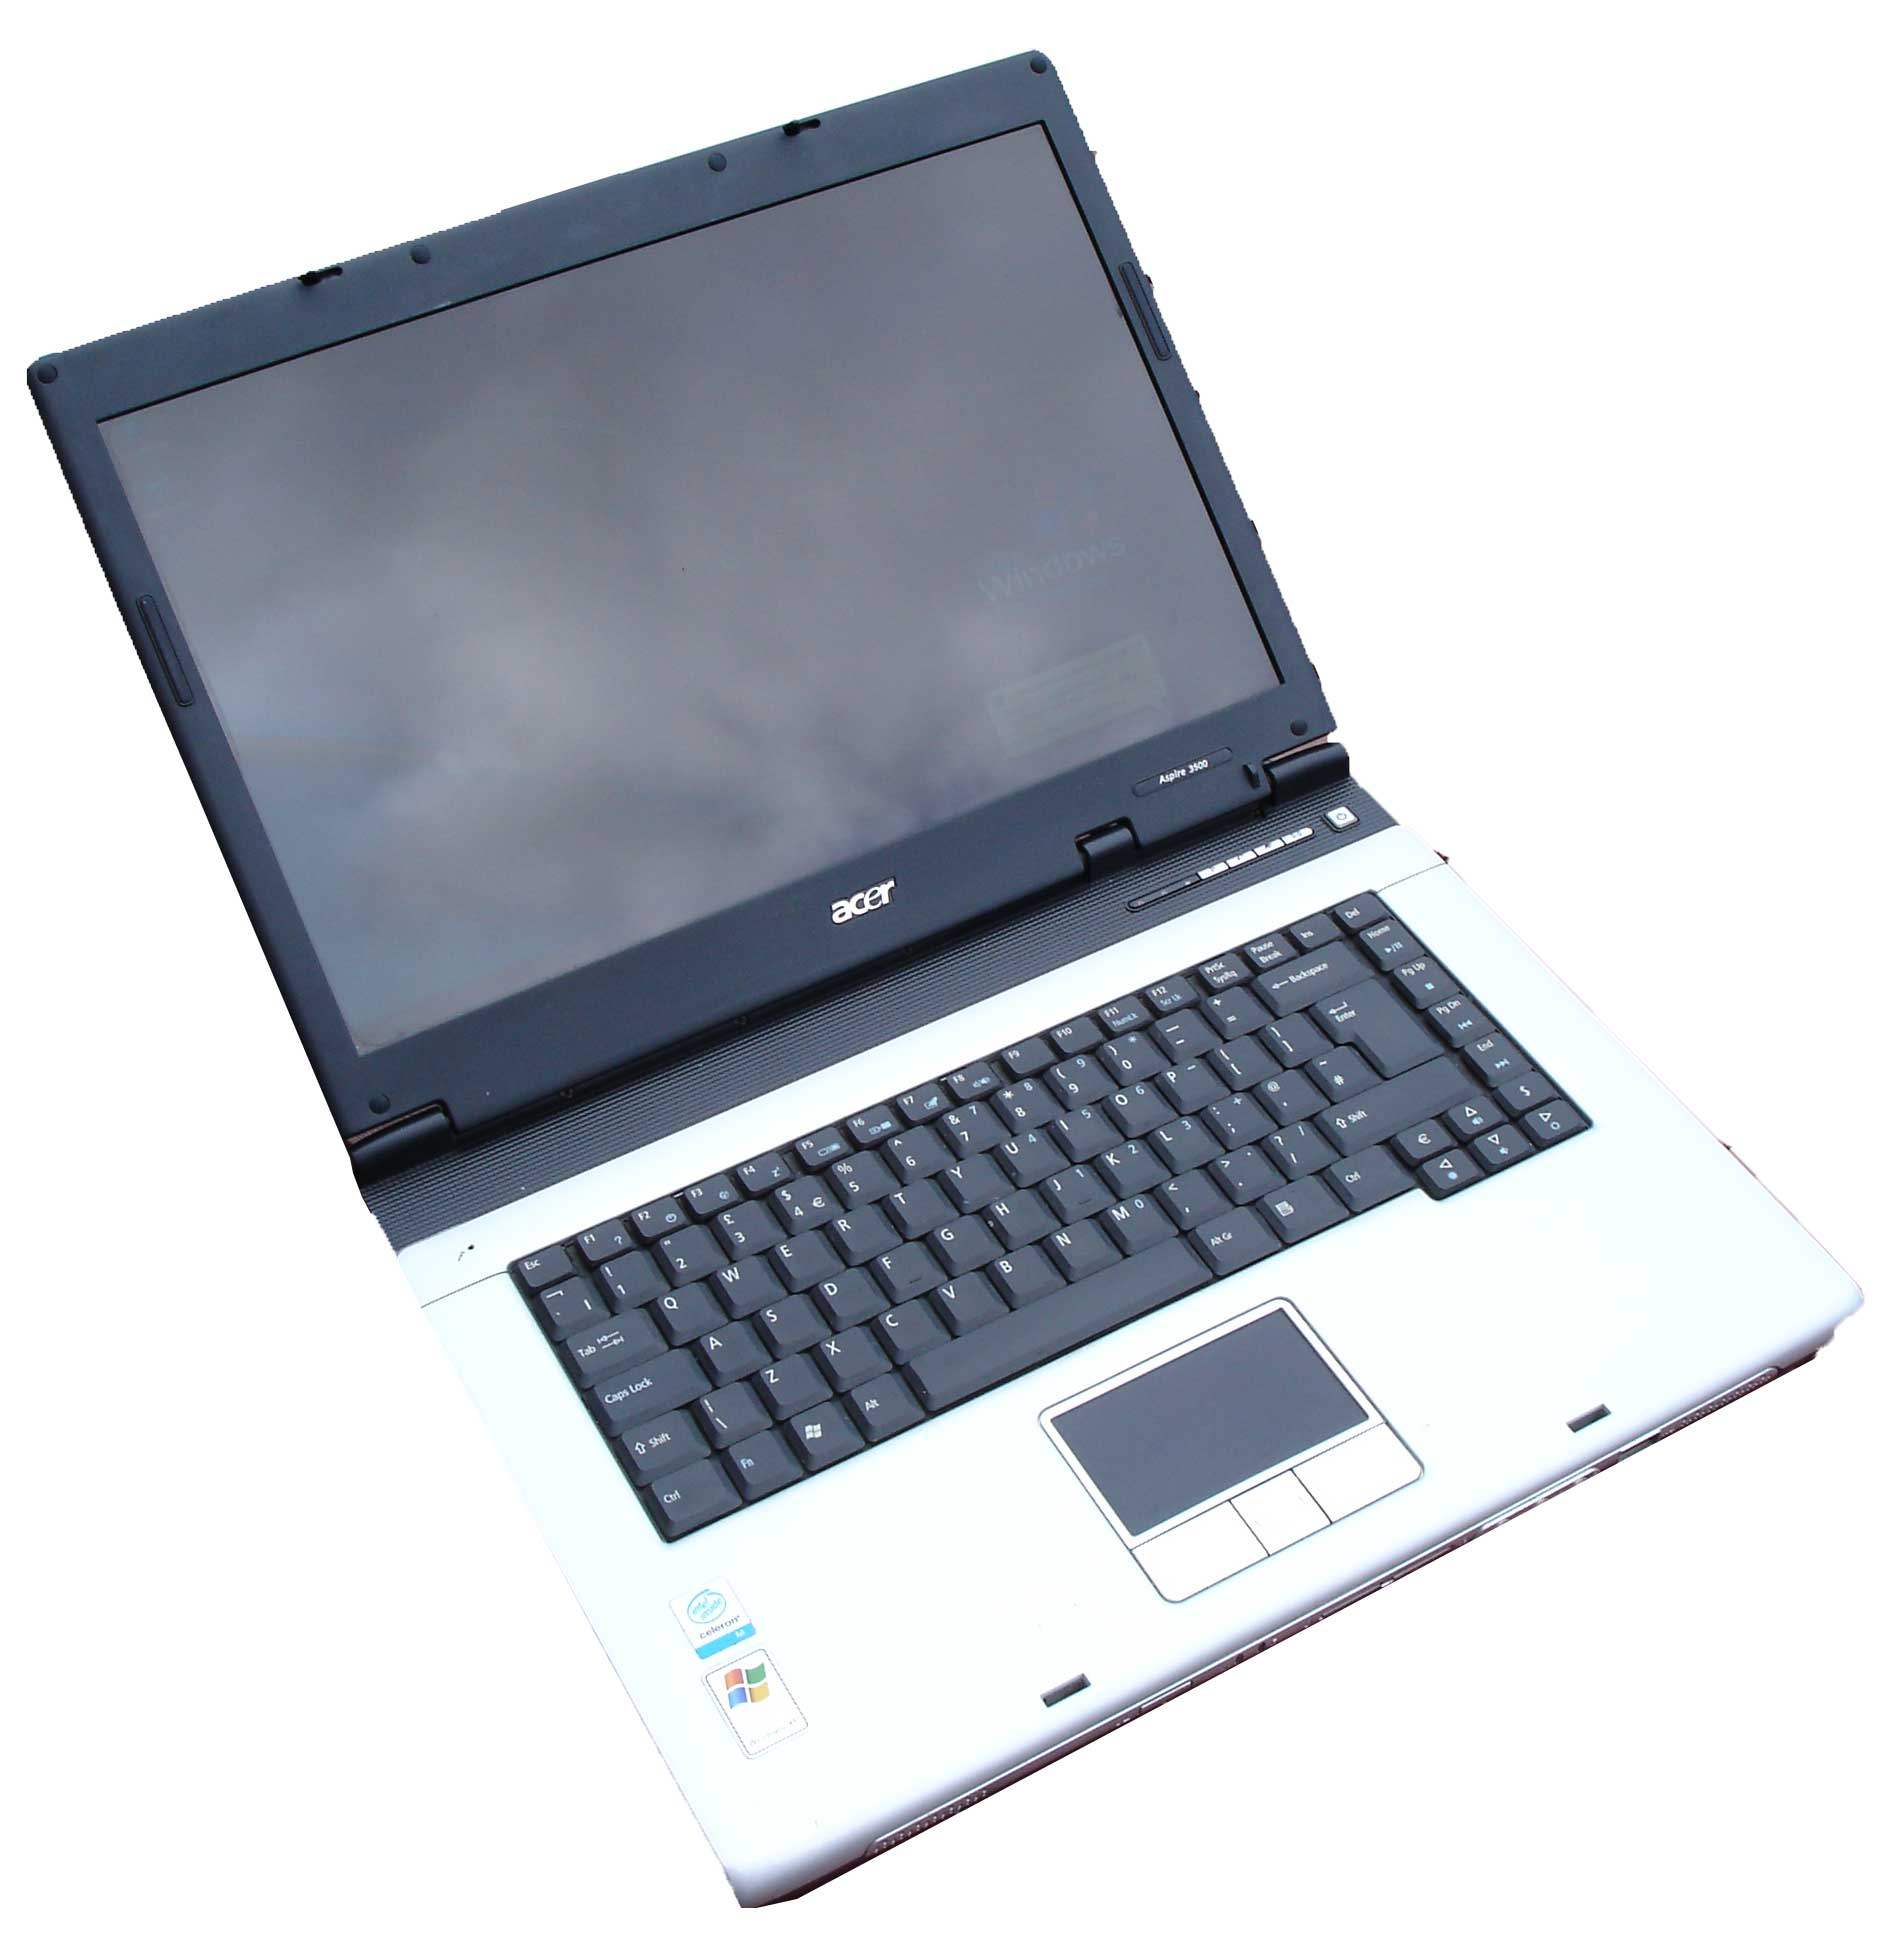 Acer Aspire 3500/3502WLMI Windows XP Laptop